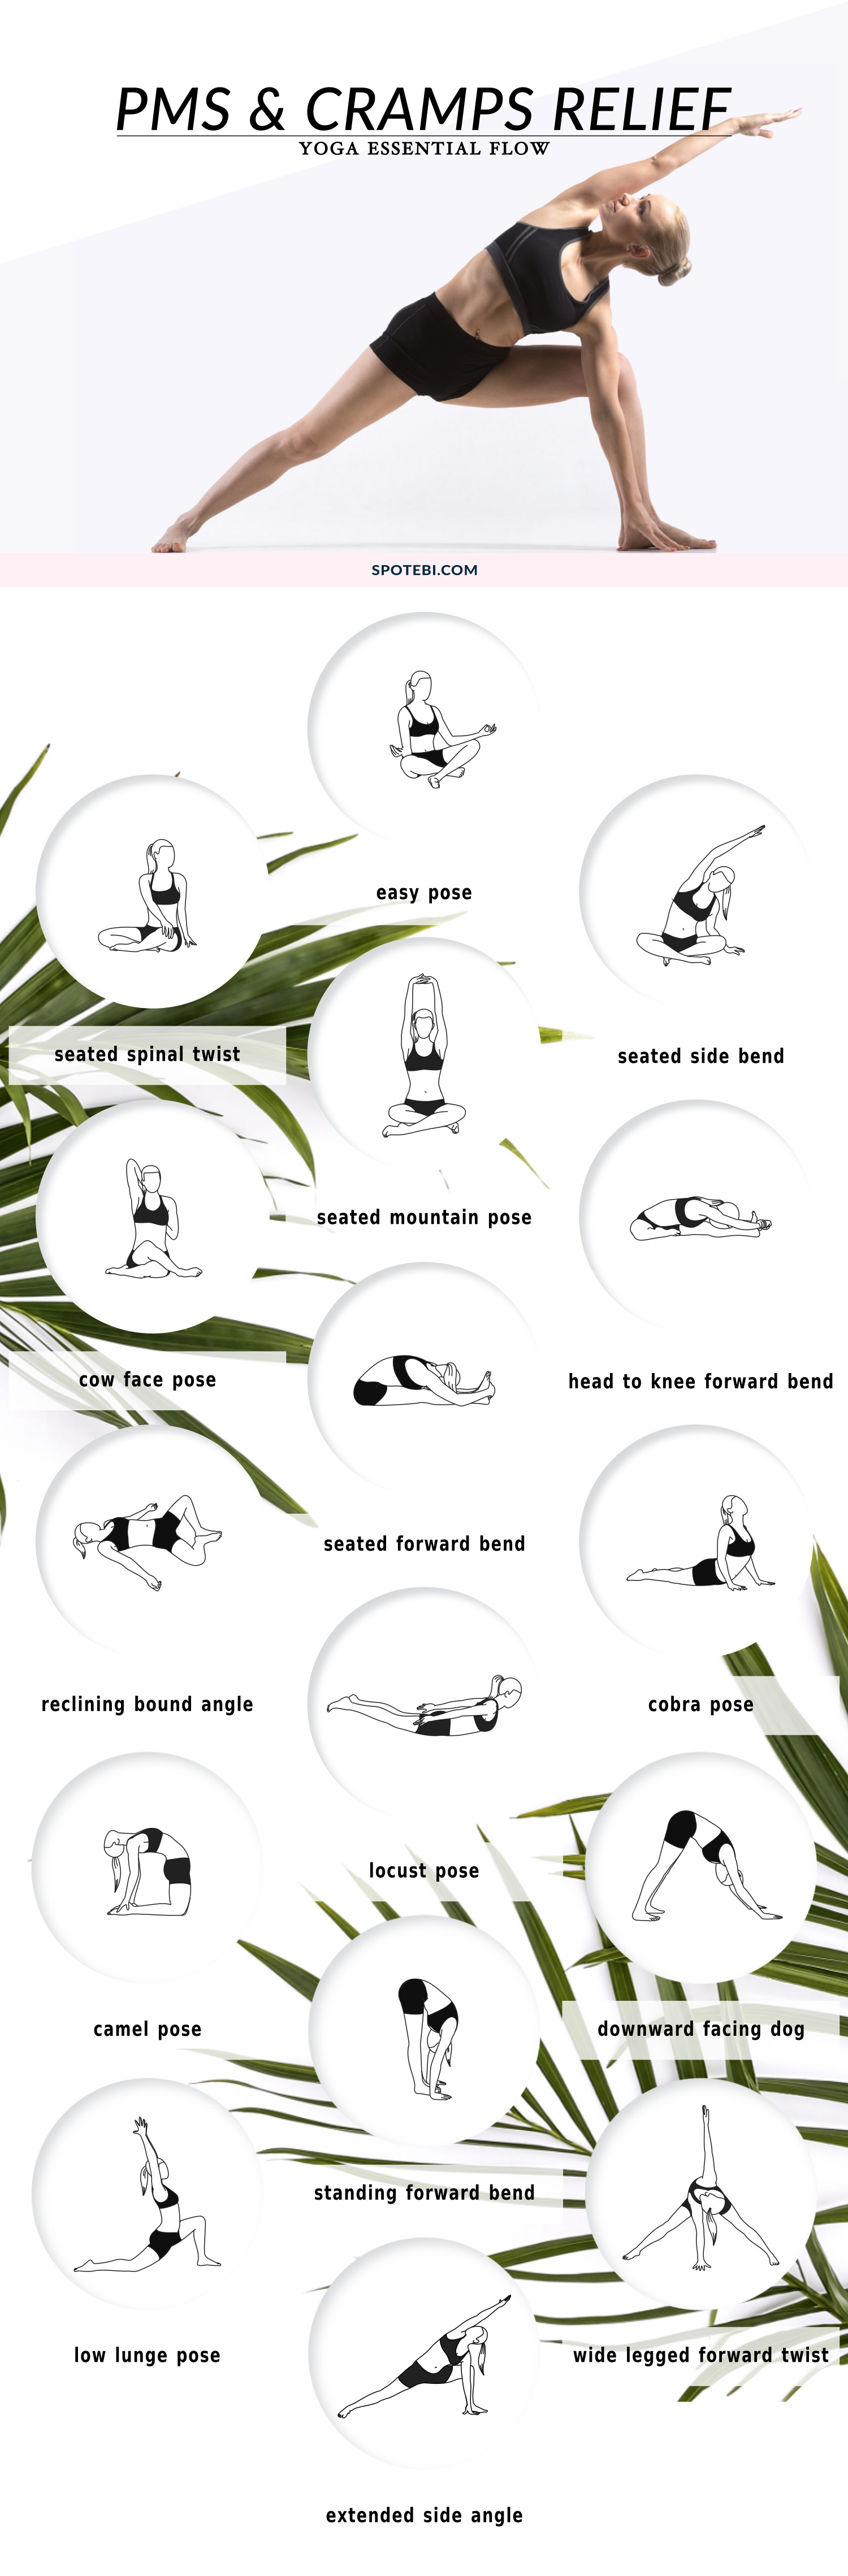 Relieve PMS symptoms and ease cramps with this 13-minute yoga essential flow. A sequence of 16 yoga poses to help you strengthen the body, calm the mind and alleviate pain caused by menstrual cramps. http://www.spotebi.com/yoga-sequences/pms-cramps-relief-flow/